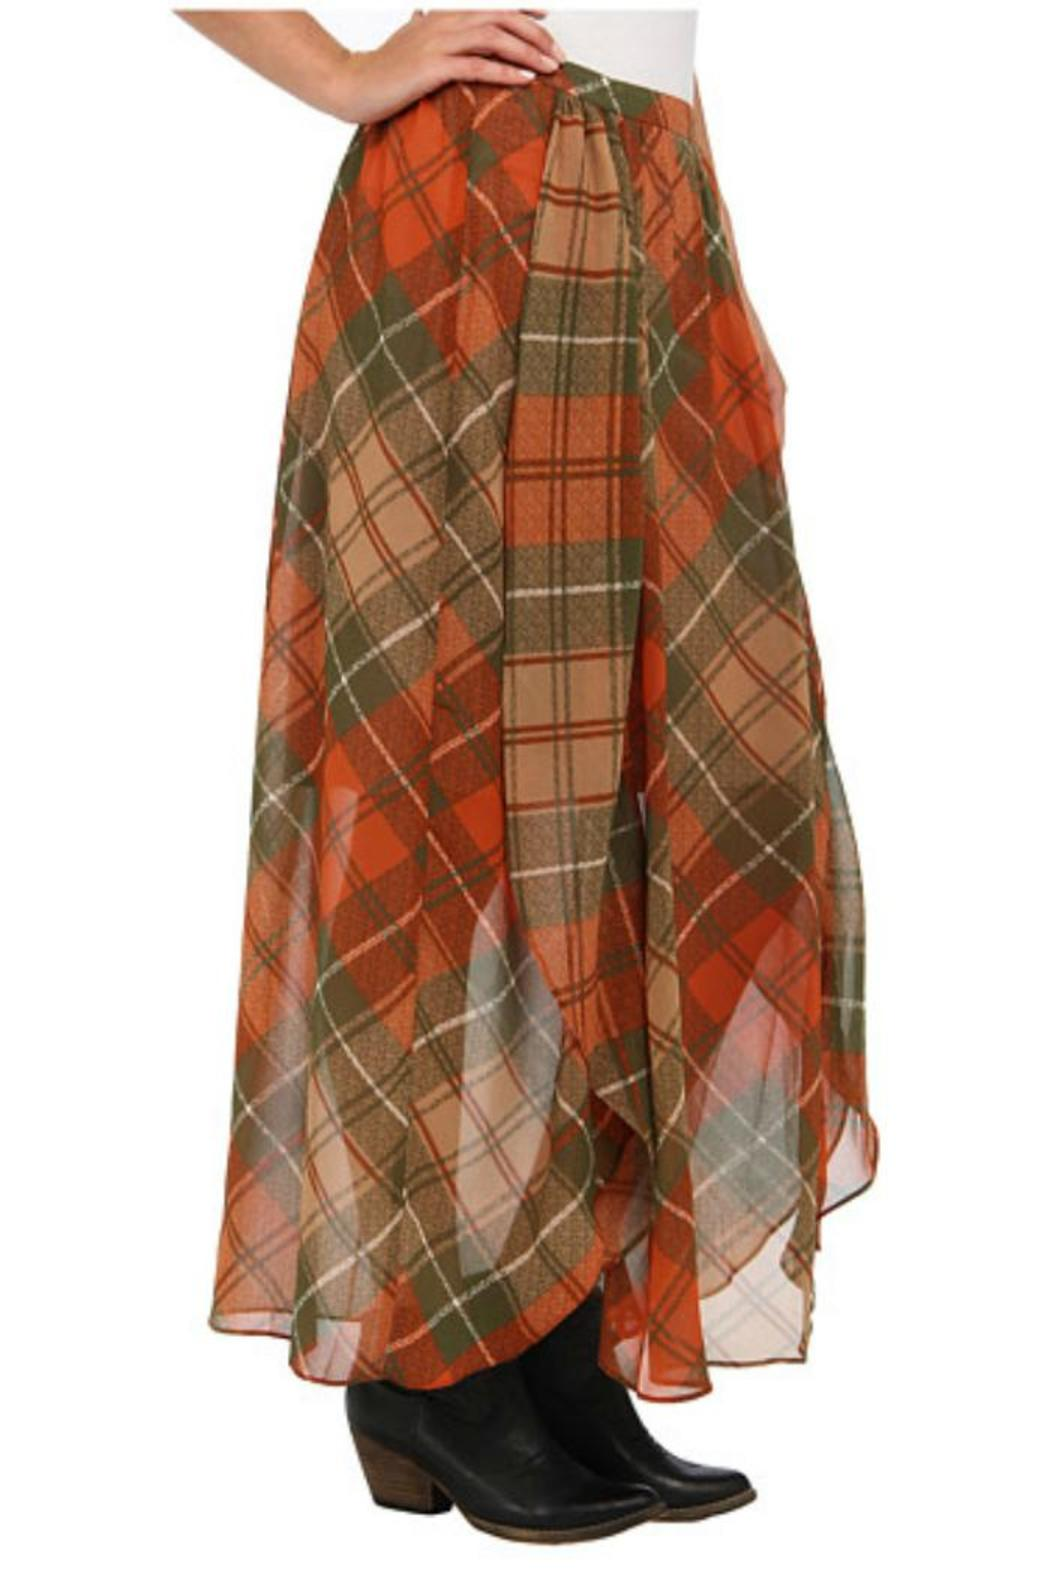 Locust Whimsy Plaid Maxi Skirt - Side Cropped Image